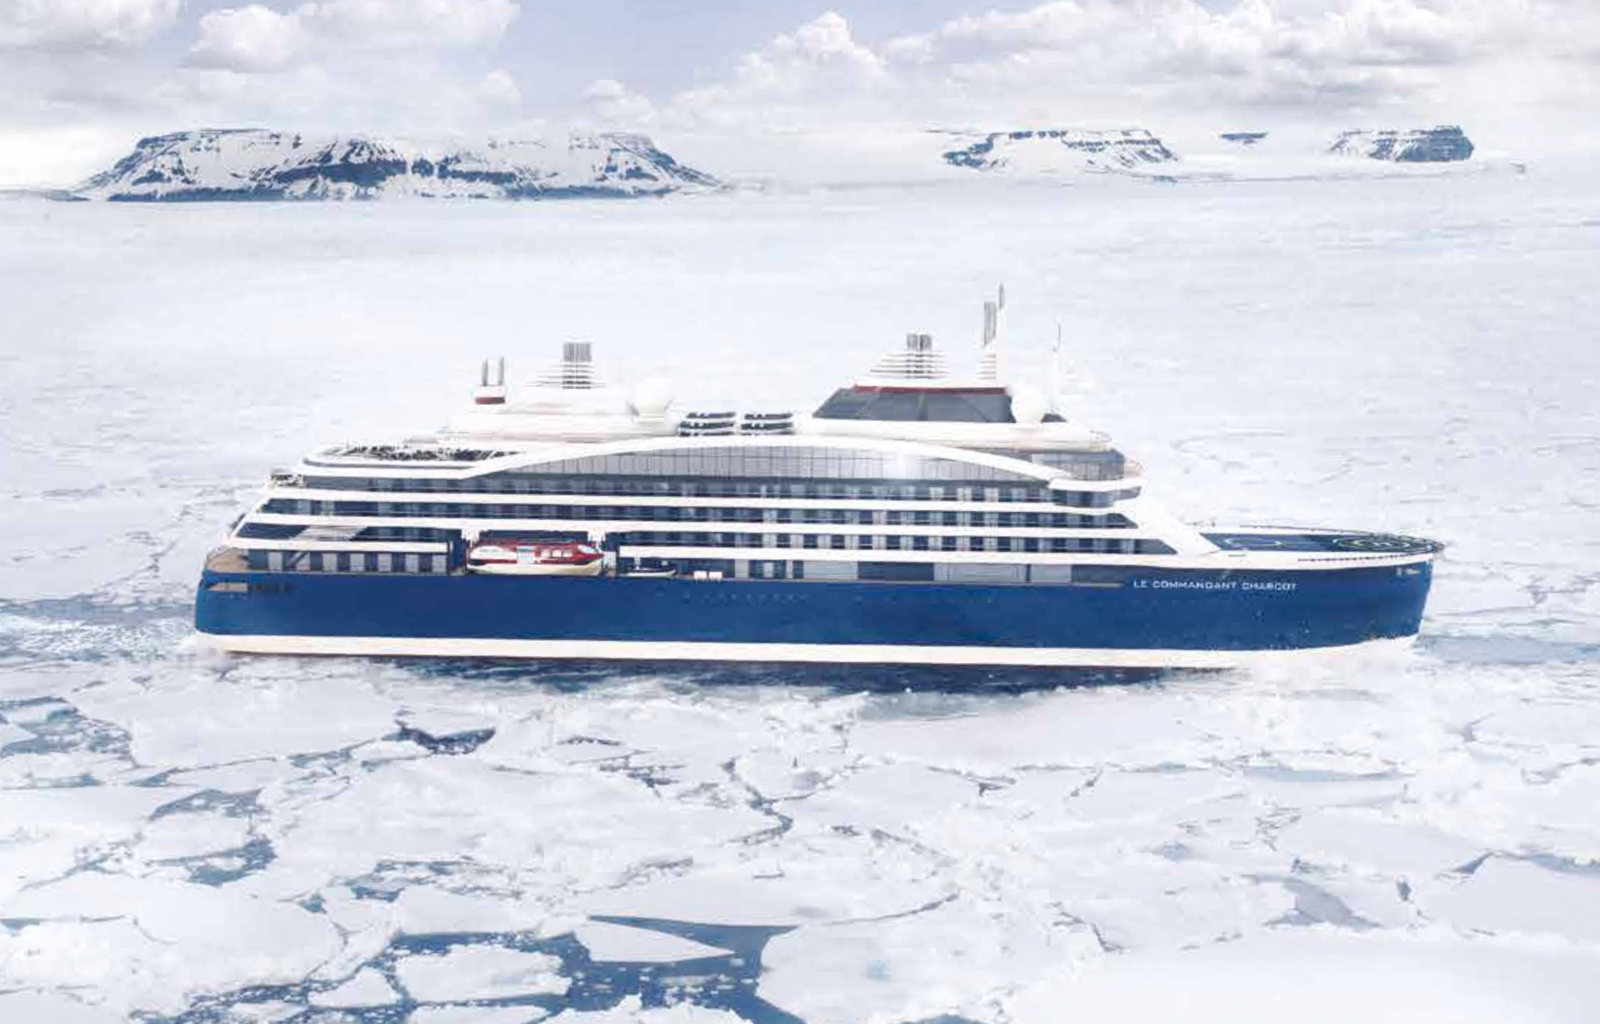 French Cruise Ship Set To Travel To North Pole In 2021